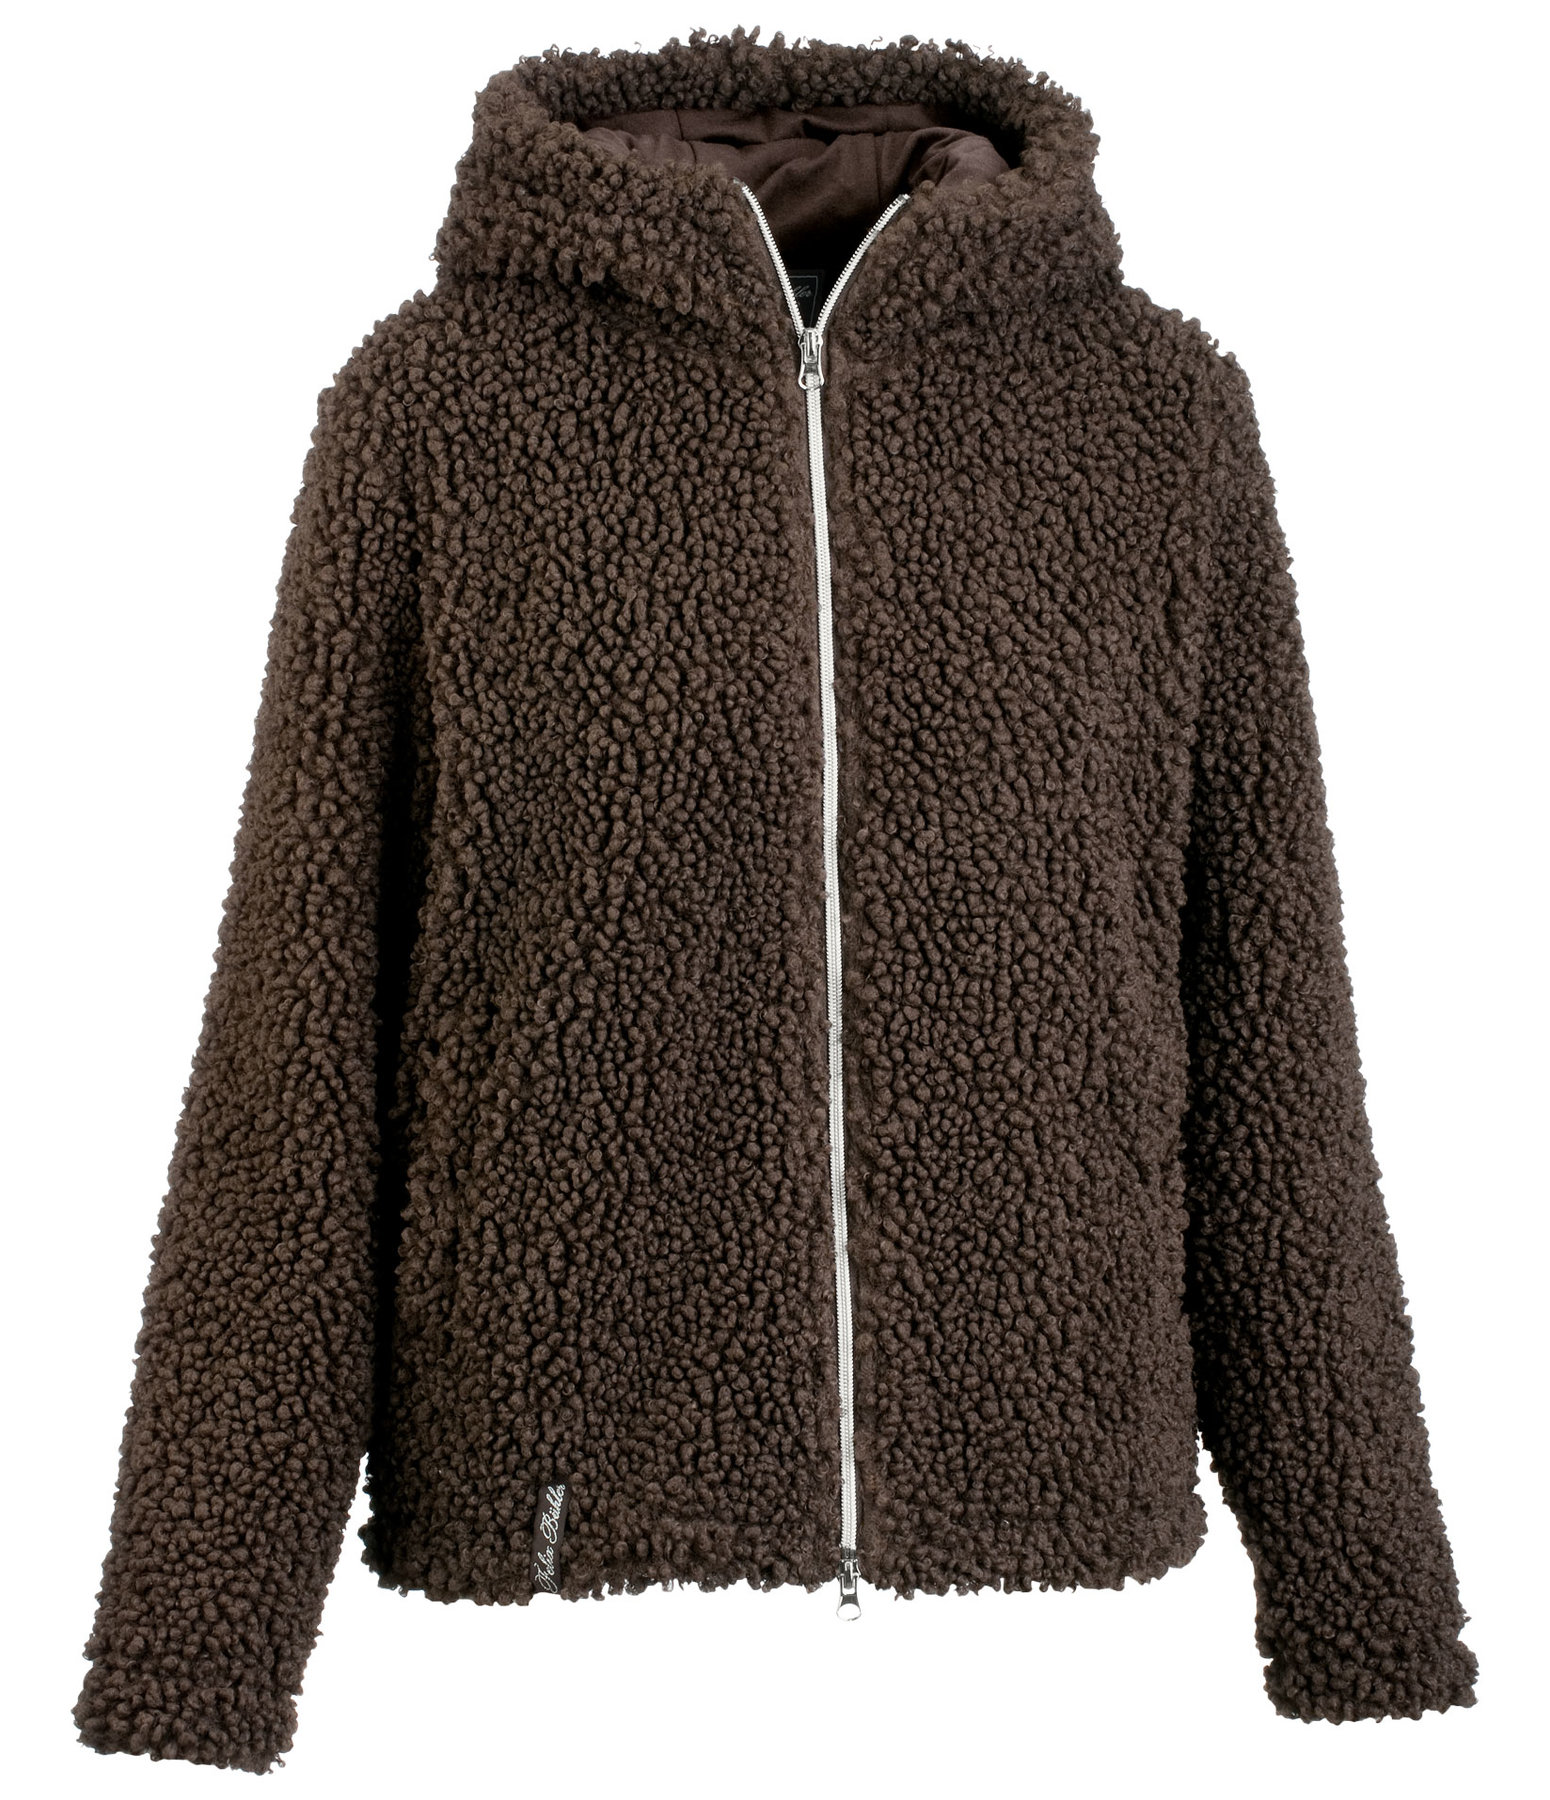 Hooded Teddy Fleece Jacket Sophie